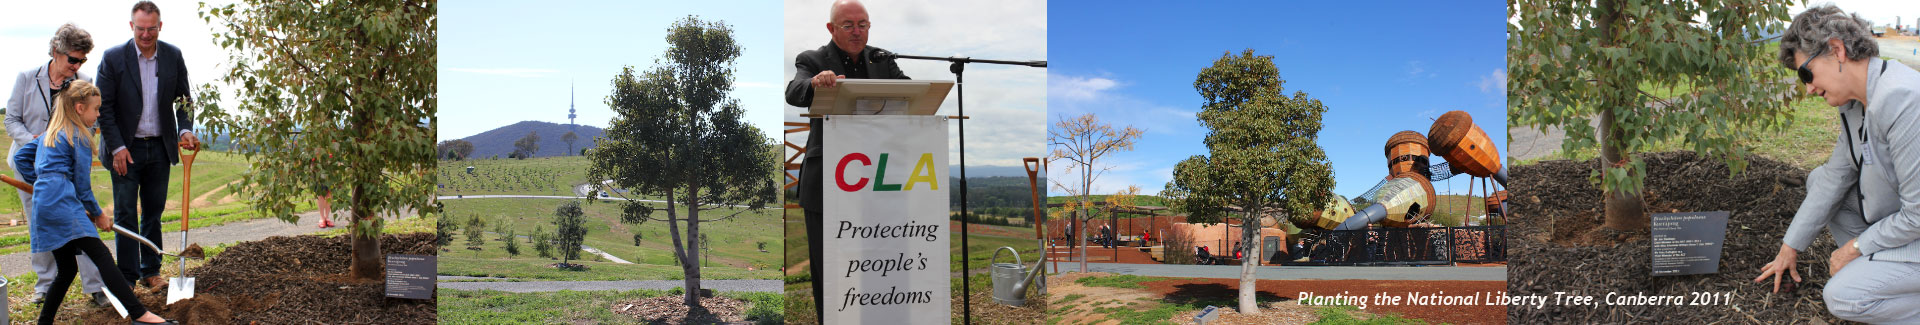 Nov 2015 newsletter: CLA prepares strategic plan seeking Better Justice